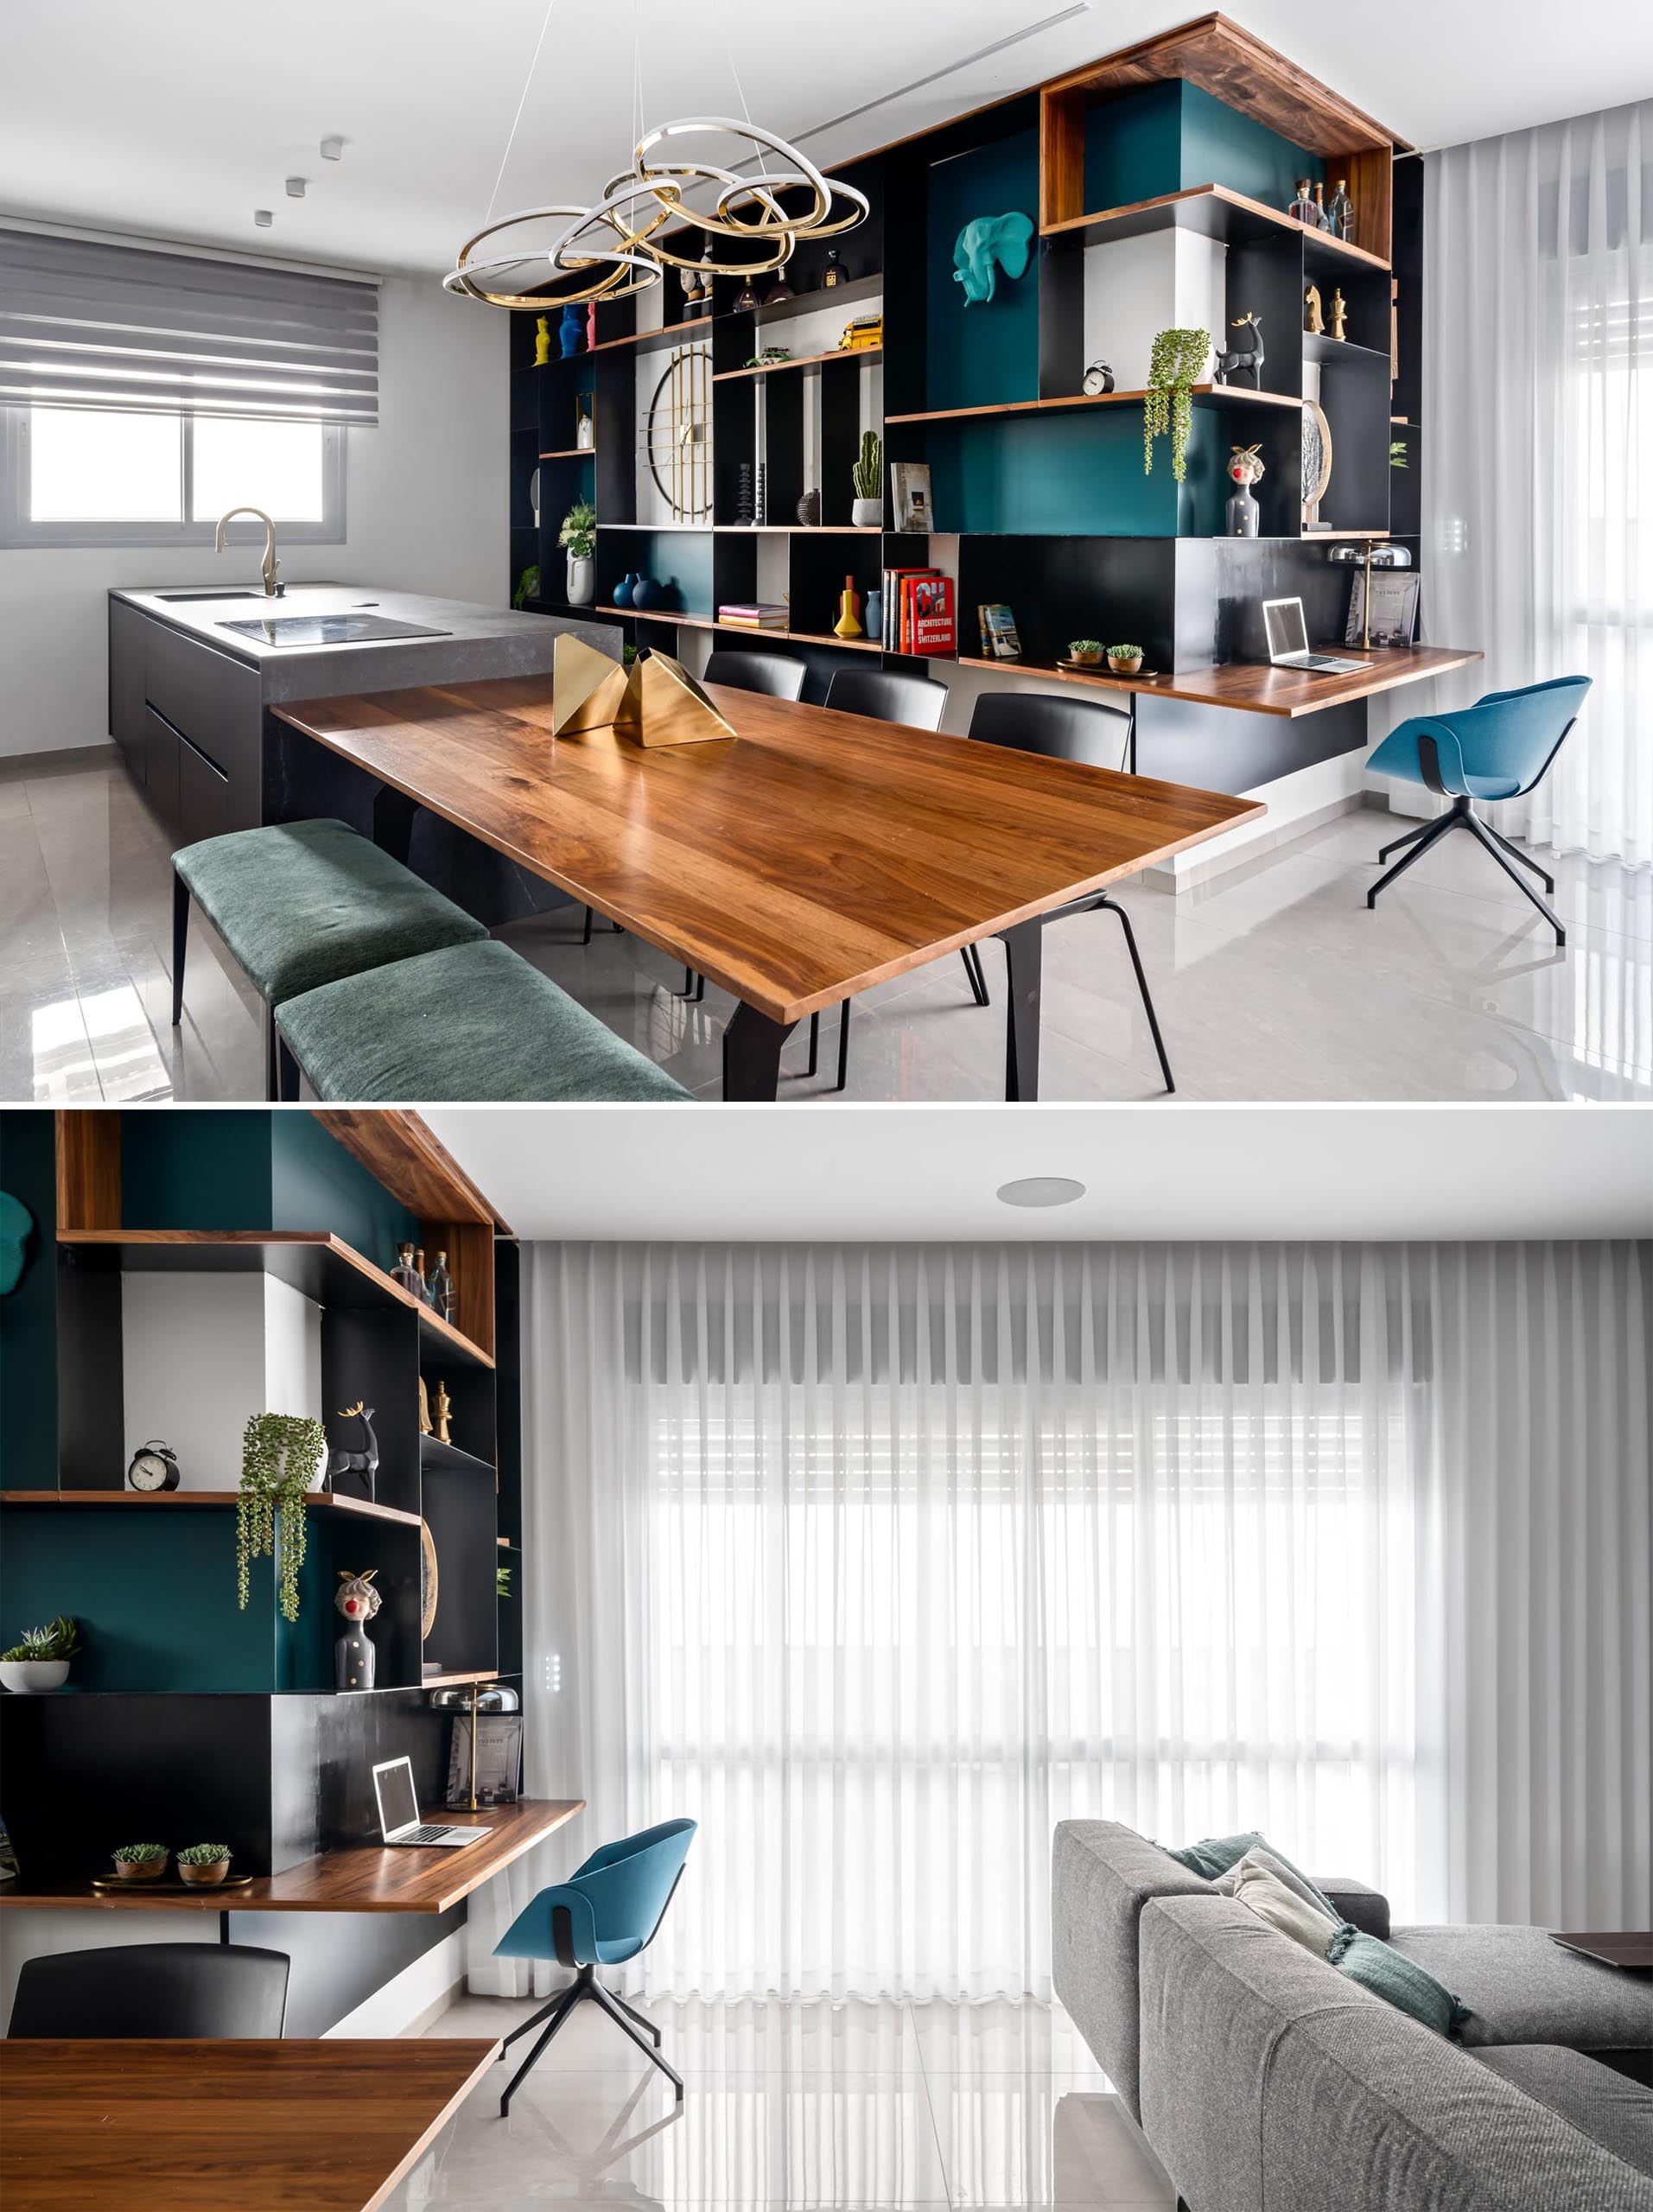 Open to both the kitchen / dining room and the living room, the steel shelving unit has wood shelf that's designed as a desk, making use of an awkward corner by the sliding doors that open to a balcony.